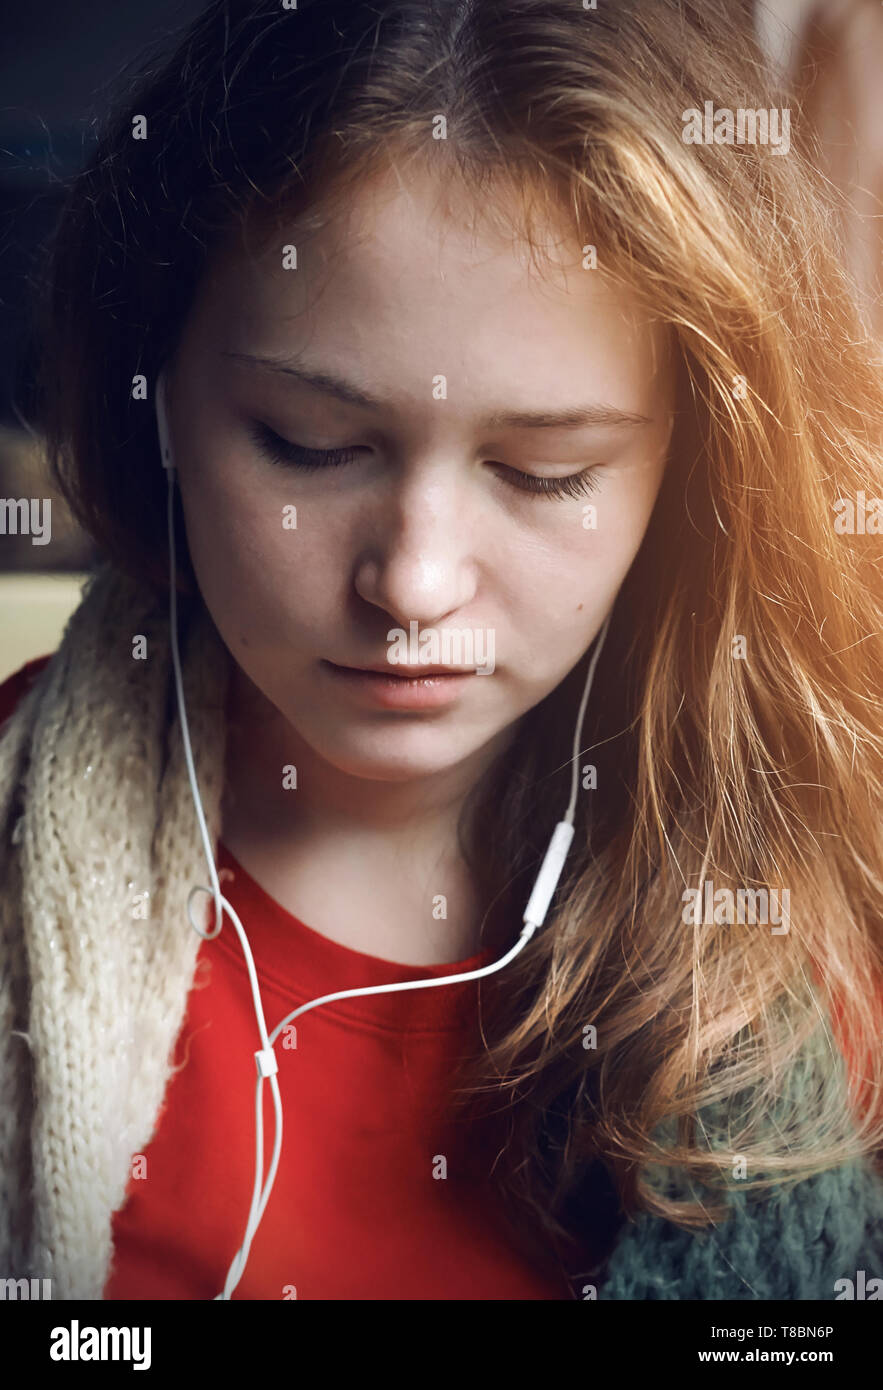 A long-haired beautiful girl in a red t-shirt rides in public transport near the window, from which the sunlight shines, and listens to music in headp - Stock Image